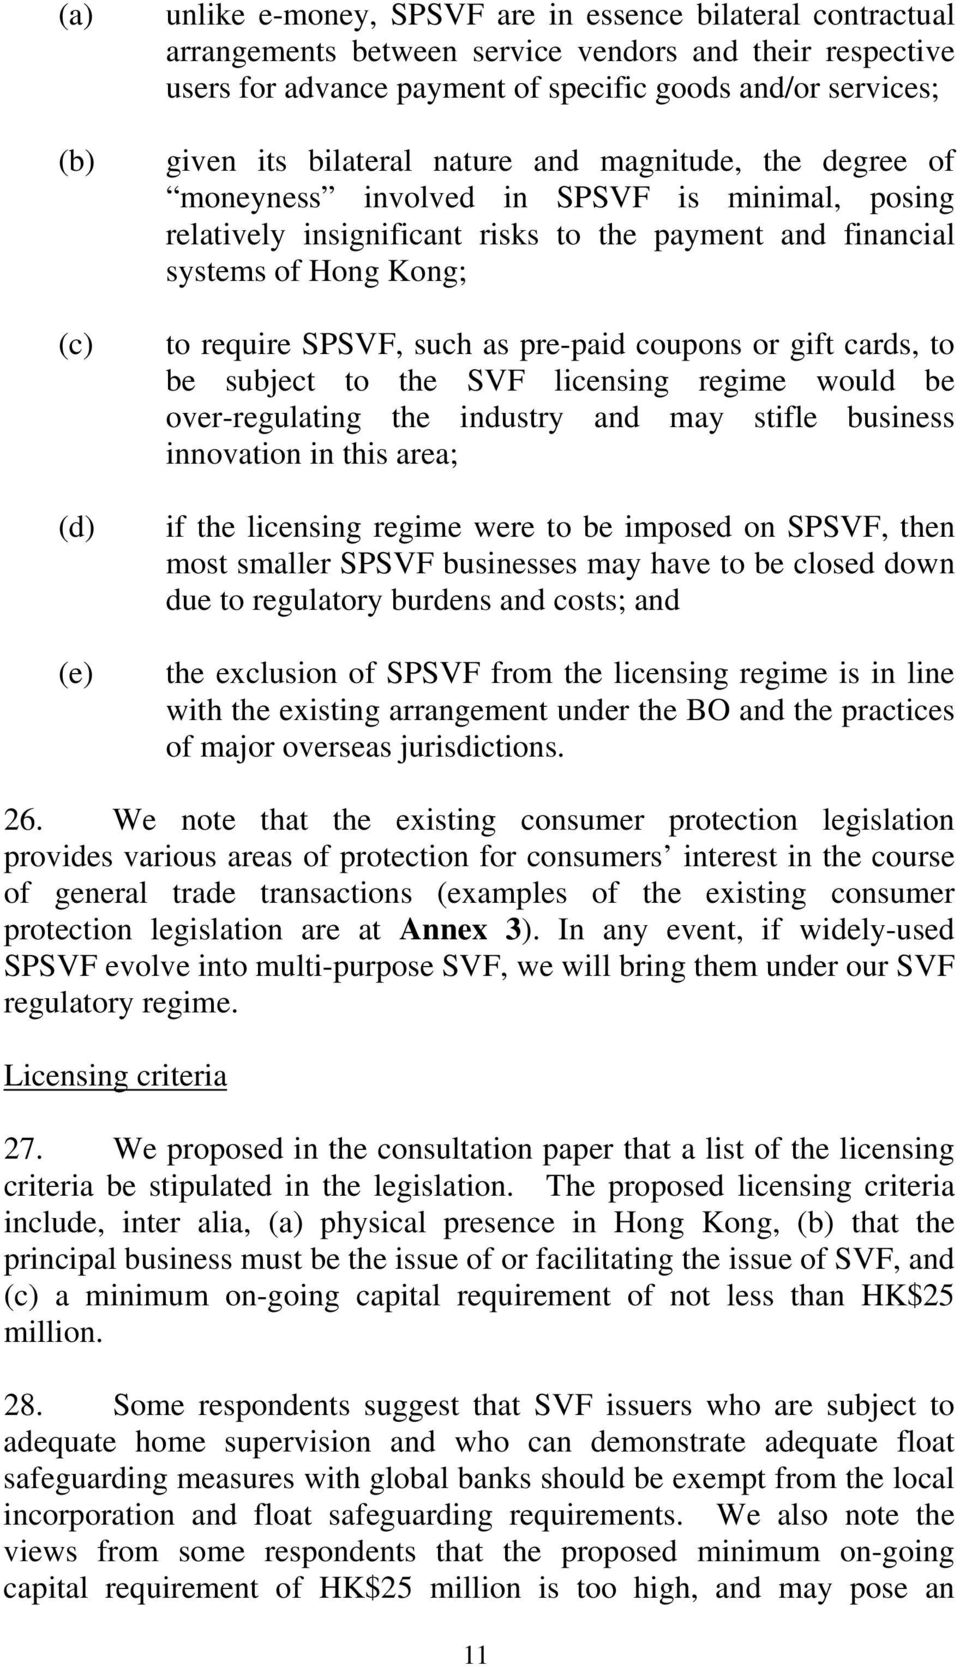 SPSVF, such as pre-paid coupons or gift cards, to be subject to the SVF licensing regime would be over-regulating the industry and may stifle business innovation in this area; if the licensing regime